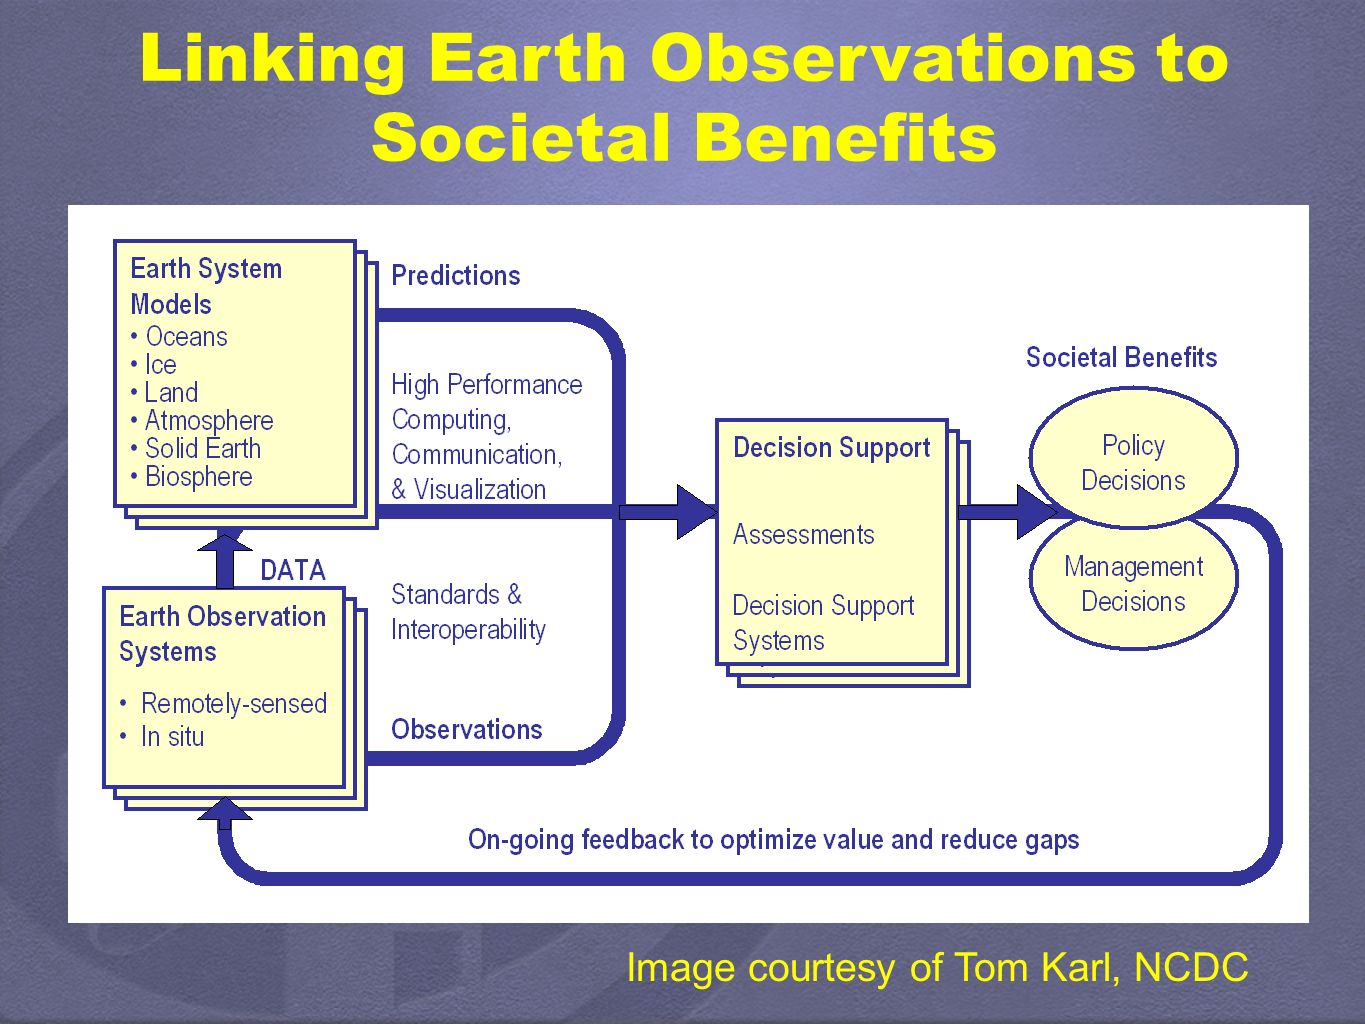 Linking Earth Observations to Societal Benefits Image courtesy of Tom Karl, NCDC